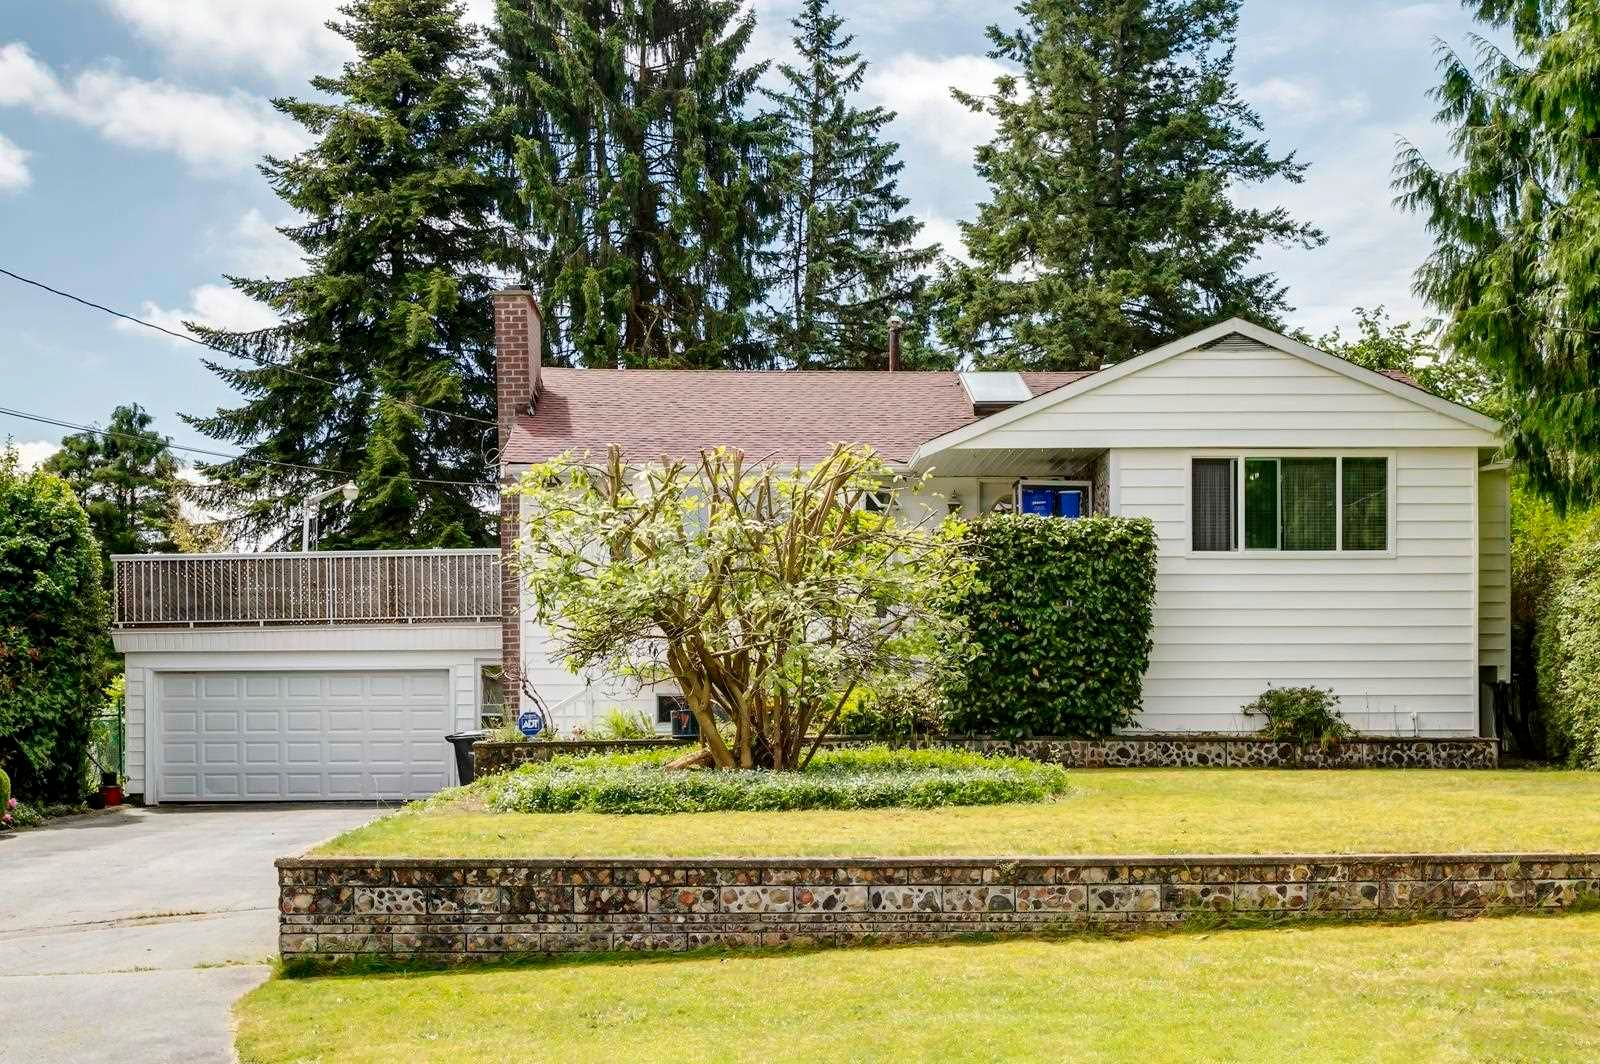 Main Photo: 1640 EDEN Avenue in Coquitlam: Central Coquitlam House for sale : MLS®# R2595452